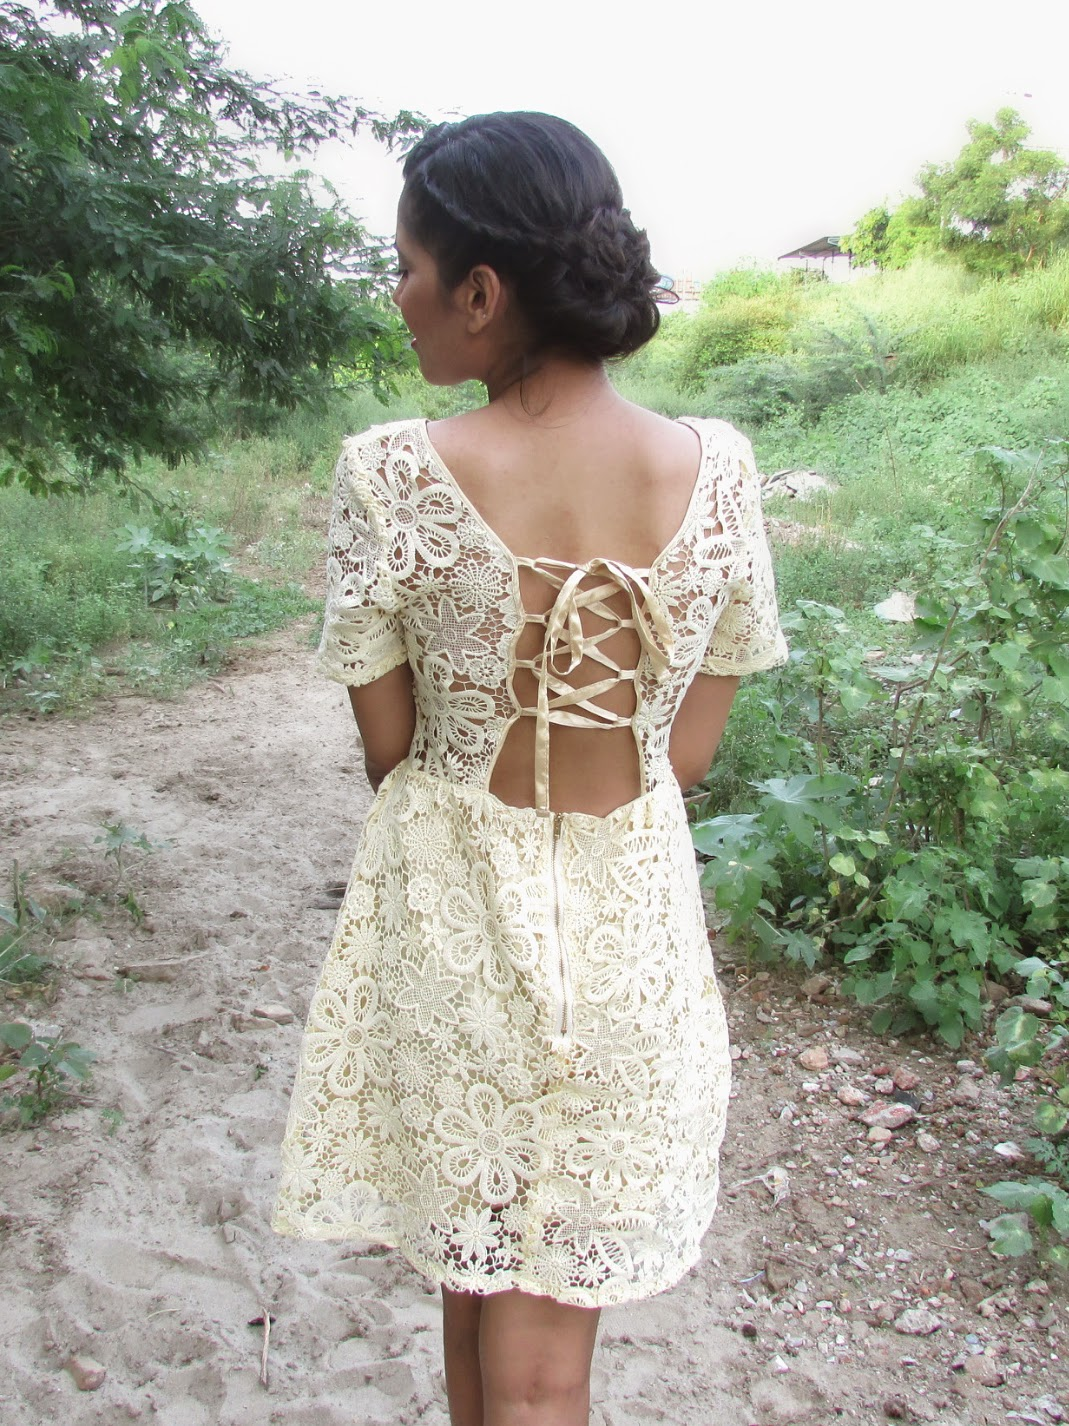 lace , crochet , lace dress , crochet dress, white lace dress, white crochet dress, cream lace dress, cream crochet dress, backless dress, backless lace dress, backless crochet dress, backless white lace dress, backless white crochet dress, backless cream lace dress, backless cream crochet dress, lace milanoo , crochet milanoo  , lace dress milanoo , crochet dress milanoo , white lace dress milanoo , white crochet dress milanoo , cream lace dress milanoo , cream crochet dress milanoo , backless dress milanoo , backless lace dress milanoo , backless crochet dress milanoo , backless white lace dress milanoo , backless white crochet dress milanoo , backless cream lace dress milanoo , backless cream crochet dress milanoo , milanoo ootd, milanoo review, milanoo  prodcut review, milanoo website review,crochet , lace , summer, white , crochet top , lace top , white lace top , white crochet top , net , net top , white net top,Statement necklace, necklace, statement necklaces, big necklace, heavy necklaces , gold necklace, silver necklace, silver statement necklace, gold statement necklace, studded statement necklace , studded necklace, stone studded necklace, stone necklace, stove studded statement necklace, stone statement necklace, stone studded gold statement necklace, stone studded silver statement necklace, black stone necklace, black stone studded statement necklace, black stone necklace, black stone statement necklace, neon statement necklace, neon stone statement necklace, black and silver necklace, black and gold necklace, blank and silver statement necklace, black and gold statement necklace, silver jewellery, gold jewellery, stove jewellery, stone studded jewellery, imitation jewellery, artificial jewellery, junk jewellery, cheap jewellery ,,Pants, snakes pants, fitted pants, printed smokey pants, printed fitted pants, geometric pants, geometric print, geometric print pants, geometric  smokey pants, geometric printed smokey trousers, smokey trousers, printed smokey trousers, trousers, pattern trousers, pattern pants, pattern bottoms, geometric pattern pants, geometric pattern trousers, silver trousers, silver pants, silver smokey pants, glittery pants, glittery silver pants,brocade , brocade pants, brocade trousers, brocade smokey pants, brocade fitted pants, brocade printed pants , brocade geometric pants, brocade geometric pattern pants, brocade geometric print pants, silver brocade pants, silver shinny brocade pants,Wishlist, clothes wishlist,  milanoo wishlist,  milanoo.com, milanoo.com wishlist, autumn wishlist,autumn milanoo wishlist, autumn clothes wishlist, autumn shoes wishlist, autumn bags wishlist, autumn boots wishlist, autumn pullovers wishlist, autumn cardigans wishlist, autymn coats wishlist,  milanoo clothes wishlist, milanoo bags wishlist,  milanoo bags wishlist, milanoo boots wishlist,  milanoo pullover wishlist,  milanoo cardigans wishlist,  milanoo autum clothes wishlist, winter clothes, wibter clothes wishlist, winter wishlist, wibter pullover wishlist, winter bags wishlist, winter boots wishlist, winter cardigans wishlist, winter leggings wishlist, milanoo winter clothes,  milanoo autumn clothes, frontrowshop winter collection, frontrowshop autumn collection,Cheap clothes online,cheap dresses online, cheap jumpsuites online, cheap leggings online, cheap shoes online, cheap wedges online , cheap skirts online, cheap jewellery online, cheap jackets online, cheap jeans online, cheap maxi online, cheap makeup online, cheap cardigans online, cheap accessories online, cheap coats online,cheap brushes online,cheap tops online, chines clothes online, Chinese clothes,Chinese jewellery ,Chinese jewellery online,Chinese heels online,Chinese electronics online,Chinese garments,Chinese garments online,Chinese products,Chinese products online,Chinese accessories online,Chinese inline clothing shop,Chinese online shop,Chinese online shoes shop,Chinese online jewellery shop,Chinese cheap clothes online,Chinese  clothes shop online, korean online shop,korean garments,korean makeup,korean makeup shop,korean makeup online,korean online clothes,korean online shop,korean clothes shop online,korean dresses online,korean dresses online,cheap Chinese clothes,cheap korean clothes,cheap Chinese makeup,cheap korean makeup,cheap korean shopping ,cheap Chinese shopping,cheap Chinese online shopping,cheap korean online shopping,cheap Chinese shopping website,cheap korean shopping website, cheap online shopping,online shopping,how to shop online ,how to shop clothes online,how to shop shoes online,how to shop jewellery online,how to shop mens clothes online, mens shopping online,boys shopping online,boys jewellery online,mens online shopping,mens online shopping website,best Chinese shopping website, Chinese online shopping website for men,best online shopping website for women,best korean online shopping,best korean online shopping website,korean fashion,korean fashion for women,korean fashion for men,korean fashion for girls,korean fashion for boys,best chinese online shopping,best chinese shopping website,best chinese online shopping website,wholesale chinese shopping website,wholesale shopping website,chinese wholesale shopping online,chinese wholesale shopping, chinese online shopping on wholesale prices, clothes on wholesale prices,cholthes on wholesake prices,clothes online on wholesales prices,online shopping, online clothes shopping, online jewelry shopping,how to shop online, how to shop clothes online, how to shop earrings online, how to shop,skirts online, dresses online,jeans online, shorts online, tops online, blouses online,shop tops online, shop blouses online, shop skirts online, shop dresses online, shop botoms online, shop summer dresses online, shop bracelets online, shop earrings online, shop necklace online, shop rings online, shop highy low skirts online, shop sexy dresses onle, men's clothes online, men's shirts online,men's jeans online, mens.s jackets online, mens sweaters online, mens clothes, winter coats online, sweaters online, cardigens online,beauty , fashion,beauty and fashion,beauty blog, fashion blog , indian beauty blog,indian fashion blog, beauty and fashion blog, indian beauty and fashion blog, indian bloggers, indian beauty bloggers, indian fashion bloggers,indian bloggers online, top 10 indian bloggers, top indian bloggers,top 10 fashion bloggers, indian bloggers on blogspot,home remedies, how to, milanooonline shopping, milanoo online shopping review,milanoo.com review, milanoo online clothing store, milanoo online chinese store, milanoo online shopping, milanoosite review,milanoo.com site review,  milanoo Chines fashion, milanoo ,milanoo.com,  milanoo clothing,  milanoo dresses,  milanoo shoes,  milanoo accessories, milanoo men cloths , milanoo makeup,  milanoo products, milanoo Chinese online shopping,  milanoo Chinese store, milanoo online chinese shopping,milanoochinese shopping online,milanoo,milanoo dresses, milanoo clothes, milanoo garments, milanoo clothes, milanoo skirts, milanoo pants, milanoo tops,  milanoo cardigans,  milanoo leggings,  milanoo fashion , milanoo clothes fashion,  milanoo footwear, milanoo fashion footwear,  milanoo jewellery, milanoo fashion jewellery,  milanoo rings,  milanoo necklace,  milanoo bracelets,  milanoo earings,Autumn, fashion,milanoo wishlist,Winter,fall, fall abd winter, winter clothes , fall clothes, fall and winter clothes, fall jacket, winter jacket, fall and winter jacket, fall blazer, winter blazer, fall and winter blazer, fall coat , winter coat, falland winter coat, fall coverup, winter coverup, fall and winter coverup, outerwear, coat , jacket, blazer, fall outerwear, winter outerwear, fall and winter outerwear, woolen clothes, wollen coat, woolen blazer, woolen jacket, woolen outerwear, warm outerwear, warm jacket, warm coat, warm blazer, warm sweater, coat , white coat, white blazer, white coat, white woolen blazer, white coverup, white woollens, milanoo online shopping review,milanoo.com review, milanoo online clothing store, milanoo online chinese store, milanoo online shopping, milanoo site review,milanoo.com site review,  milanoo Chines fashion,  milanoo, milanoo.com, milanoo clothing,  milanoo dresses,  milanoo shoes,  milanoo accessories, milanoo men cloths , milanoo makeup,   milanoo health products, milanoo Chinese online shopping,  milanoo Chinese store,  milanoo online chinese shopping, milanoochinese shopping online,milanoo, milanoo dresses, milanoo clothes,  milanoo garments,  milanoo clothes,  milanoo skirts,  milanoo pants,  milanoo tops,  milanoo cardigans, milanoo  leggings,  milanoo fashion ,  milanoo clothes fashion, milanoo footwear,milanoo fashion footwear,  milanoo jewellery, milanoo fashion jewellery,  milanoo rings, milanoo necklace, milanoo bracelets, milanoo earings,latest fashion trends online, online shopping, online shopping in india, online shopping in india from america, best online shopping store , best fashion clothing store, best online fashion clothing store, best online jewellery store, best online footwear store, best online store, beat online store for clothes, best online store for footwear, best online store for jewellery, best online store for dresses, worldwide shipping free, free shipping worldwide, online store with free shipping worldwide,best online store with worldwide shipping free,low shipping cost, low shipping cost for shipping to india, low shipping cost for shipping to asia, low shipping cost for shipping to korea,Friendship day , friendship's day, happy friendship's day, friendship day outfit, friendship's day outfit, how to wear floral shorts, floral shorts, styling floral shorts, how to style floral shorts, how to wear shorts, how to style shorts, how to style style denim shorts, how to wear denim shorts,how to wear printed shorts, how to style printed shorts, printed shorts, denim shorts, how to style black shorts, how to wear black shorts, how to wear black shorts with black T-shirts, how to wear black T-shirt, how to style a black T-shirt, how to wear a plain black T-shirt, how to style black T-shirt,how to wear shorts and T-shirt, what to wear with floral shorts, what to wear with black floral shorts,how to wear all black outfit, what to wear on friendship day, what to wear on a date, what to wear on a lunch date, what to wear on lunch, what to wear to a friends house, what to wear on a friends get together, what to wear on friends coffee date , what to wear for coffee,beauty,white tee, white top , white high low top, high low top, full sleves top, white full sleaves top, white top for winters, white pullover, whitw knitted pullover, pullover, high low pullover, latest trends in pullovers, pullover 2013, inter 2013, knitewear,Christmas, Xmas , Christmas gifts, Xmas gifts, Christmas presents, Xmas presents, Christmas goodies, Xmas goodies, Christmas decor, Xmas decor, Christmas gift ideas, Xmas gift ideas, Christmas gift guide, Xmas gift guide, Christmas gifts for girls, Xmas gifts for girls, Christmas presents for girls, Xmas presents for girls, Christmas presents for boys, Xmas presents for boys, Christmas gifts for boys, Xmas gifts for boys, Christmas gifts for men, Xmas gifts for men, Christmas presents for men, Xmas presents for men, Christmas presents for women, Christmas gifts for women, Xmas gifts for men, Xmas presents for women, Christmas gifts for mommy, Christmas presents for dad, Christmas present for brother, Christmas present for sister, Christmas present for grandparent, Christmas presents for friends, Christmas presents for boyfriend, Christmas presents for girlfriend, budget Christmas , budget Christmas present, budget Christmas gifts, cheap Christmas gifts, cheap Christmas gifts online, cheap Christmas present online, Christmas light, Christmas trees, Christmas tree,Christmas tree ornament, Christmas tree decor, DIY Christmas,Leggings, winter leggings, warm leggings, winter warm leggings, fall leggings, fall warm leggings, tights, warm tights, winter tights, winter warm tights, fall tights, fall warm tights,Fur shoes, pink fur shoes, pink pigskin. Shoes, pigskin Shiraz, boat shoes, pink boat shoes, fur boat shoes, pink boat fur shoes, pigskin boat shoes, pigskin fur boat shoes, pink pigskin fur boat shoes, pigskin, boat shoes for men, boat shoes for women,boat shoes for kids, boat shoes for girls, pink boat shoes for women, pink boat shoes for girls, pink boat shoes for men, pink boat shoes for boys, milanoo shoes, milanoo pink fur shoes, milanoo pink pigskin, milanoo Shoes, milanoo pigskin Shiraz, milanoo boat shoes, milanoo pink boat shoes, milanoo fur boat shoes, milanoo pink boat fur shoes, milanoo pigskin boat shoes, milanoo pigskin fur boat shoes, milanoo pink pigskin fur boat shoes, milanoo pigskin, milanoo boat shoes for men, milanoo boat shoes for women,milanoo boat shoes for kids, milanoo boat shoes for girls, milanoo pink boat shoes for women, milanoo pink boat shoes for girls, milanoo pink boat shoes for men, milanoo pink boat shoes for boys,Statement necklace, necklace, statement necklaces, big necklace, heavy necklaces , gold necklace, silver necklace, silver statement necklace, gold statement necklace, studded statement necklace , studded necklace, stone studded necklace, stone necklace, stove studded statement necklace, stone statement necklace, stone studded gold statement necklace, stone studded silver statement necklace, black stone necklace, black stone studded statement necklace, black stone necklace, black stone statement necklace, neon statement necklace, neon stone statement necklace, black and silver necklace, black and gold necklace, blank and silver statement necklace, black and gold statement necklace, silver jewellery, gold jewellery, stove jewellery, stone studded jewellery, imitation jewellery, artificial jewellery, junk jewellery, cheap jewellery ,banggood Statement necklace,heels , stud heels, valentinos , valentino heels, valentine shoes, valentino studded shoes, valentino studded heels, valentino studded sandels, black valentino, valentino footwear ,shoe sale , valentino look alikes, cartoon tee , cartoon , cartoon print , cartoon pattern , cartoon shirt , cartoon top , cartoon print top , cartoon print shirt, cartoon paint shorts , cartoon print tee,vintage , Floral , vintage shirt , bracelet , pearls , braid , elegant , chic, retro , retro style , vintage style , retro top , grid , grid pattern , grid top , grid patter top , grid patter retro top , retro top , retto style , retro pants , vintage style